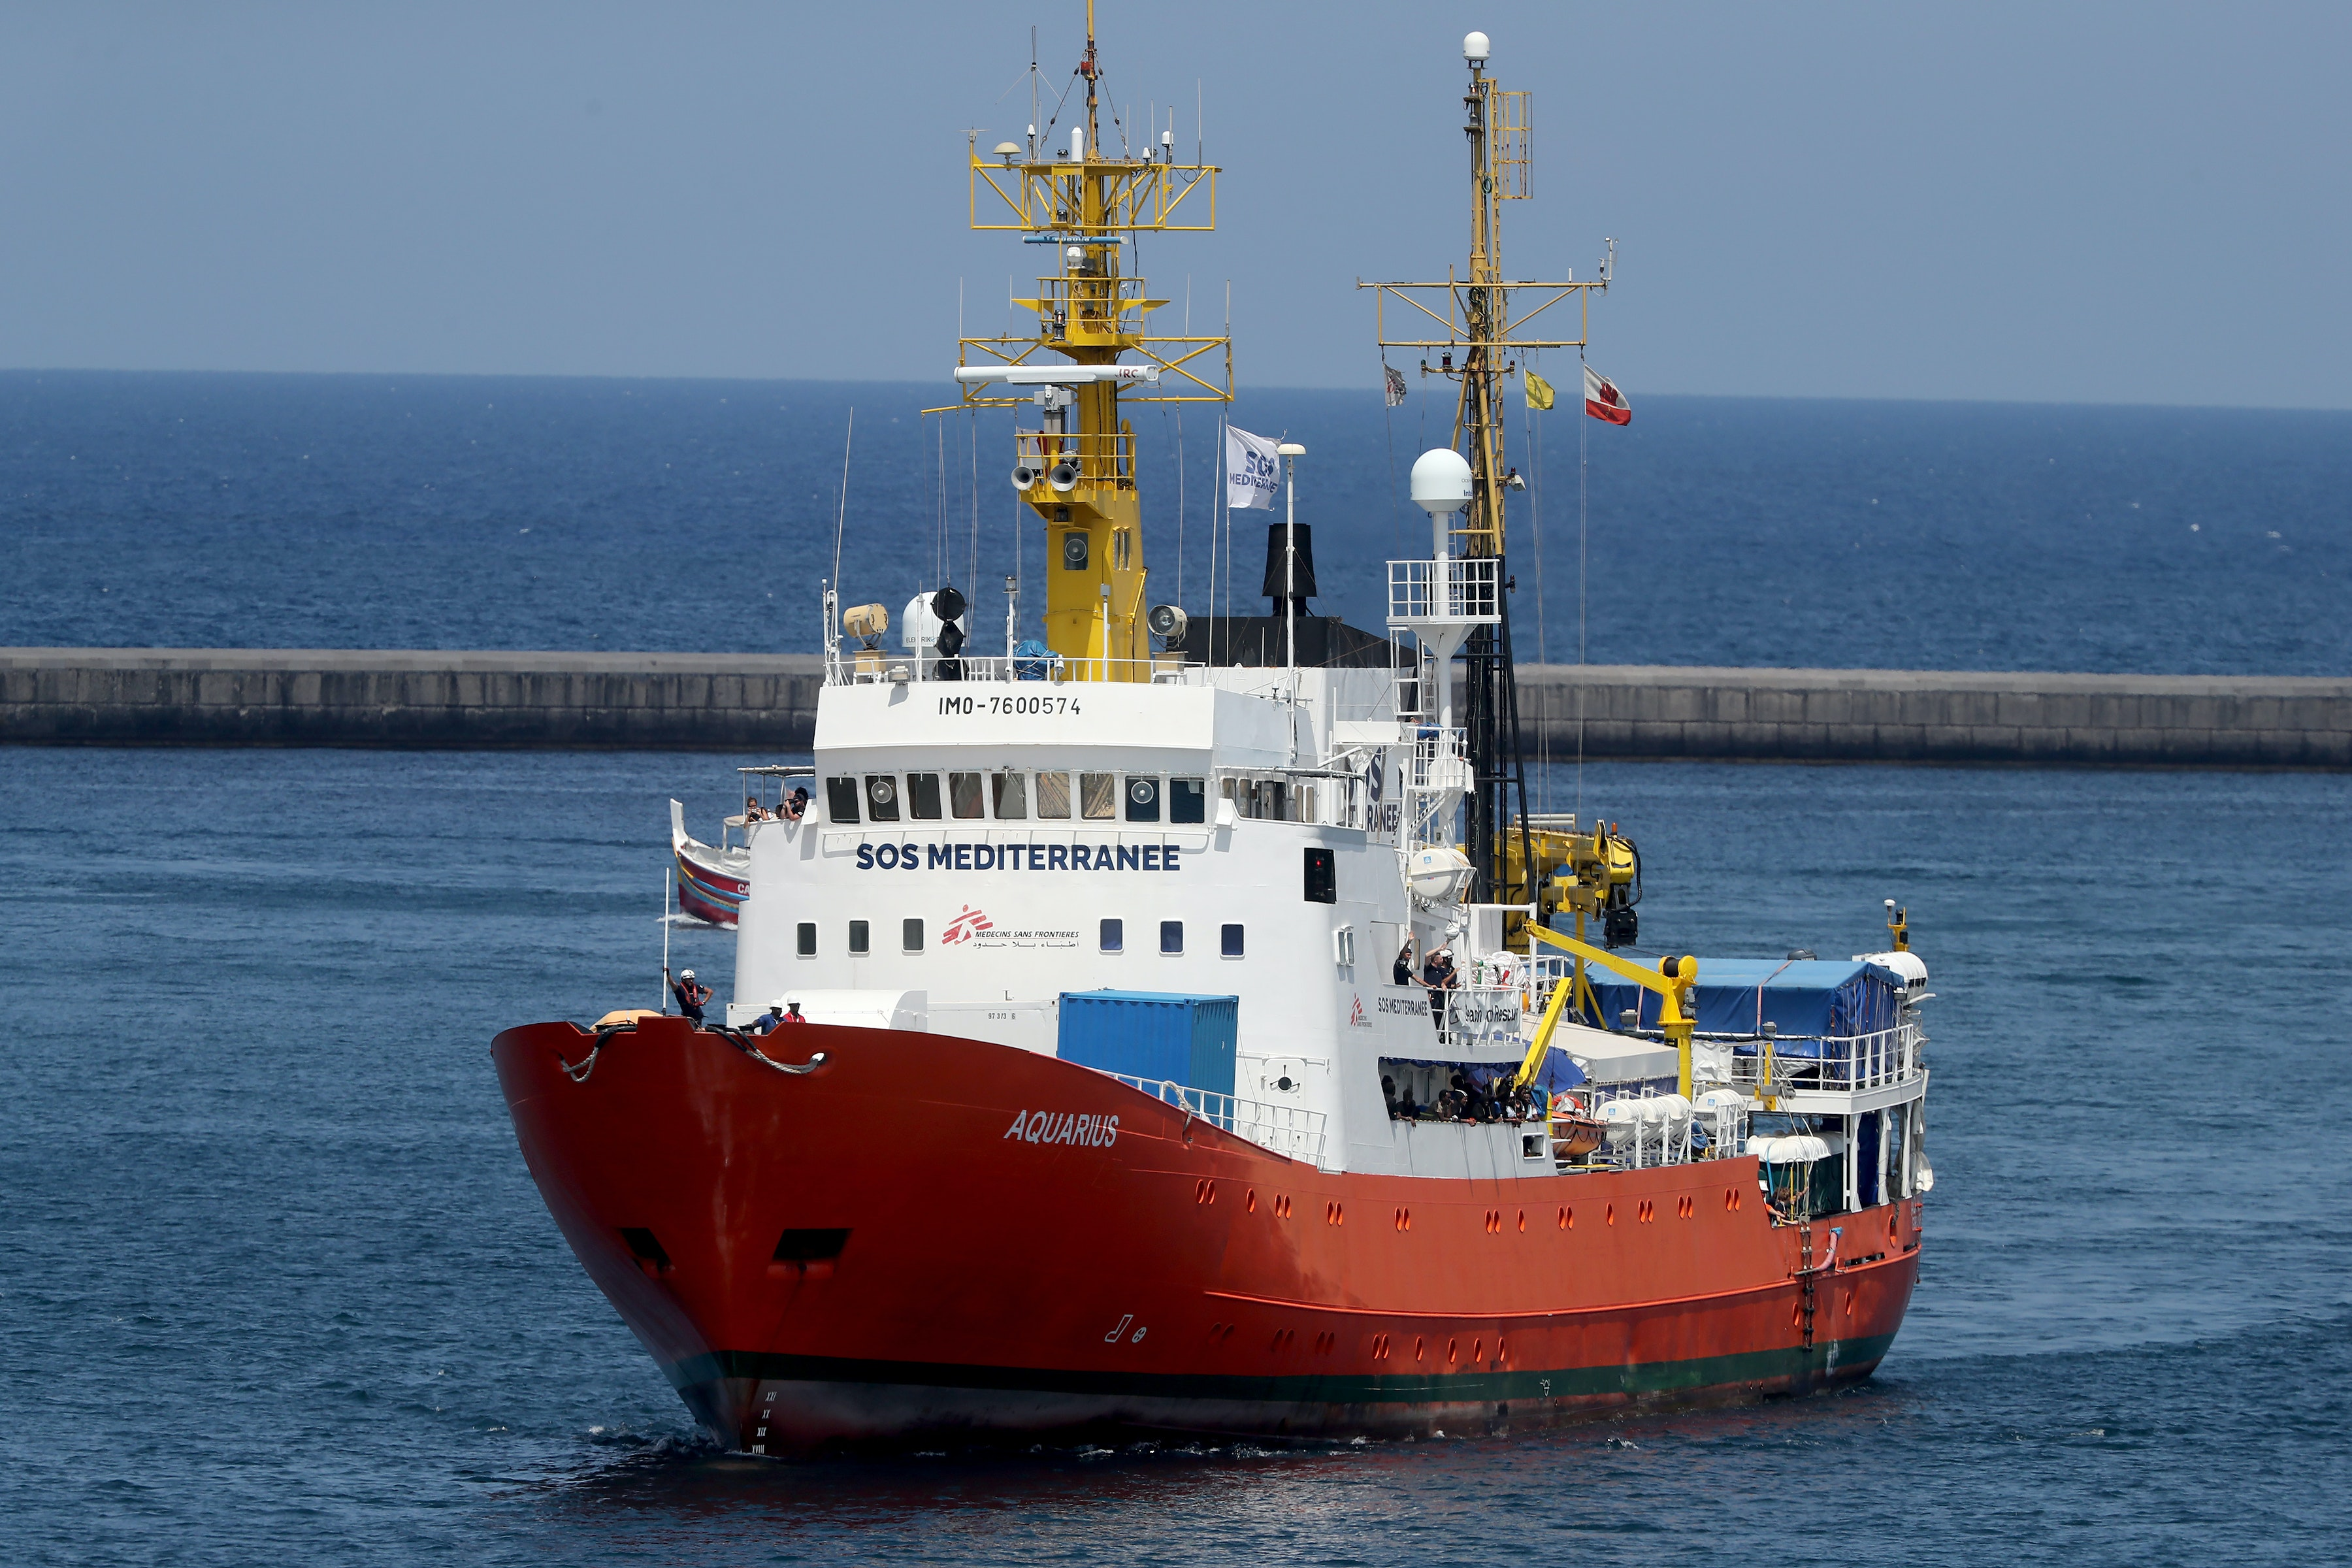 Gibraltar's decision to strip flag from Aquarius rescue ship undermines ancient seafaring principle of solidarity